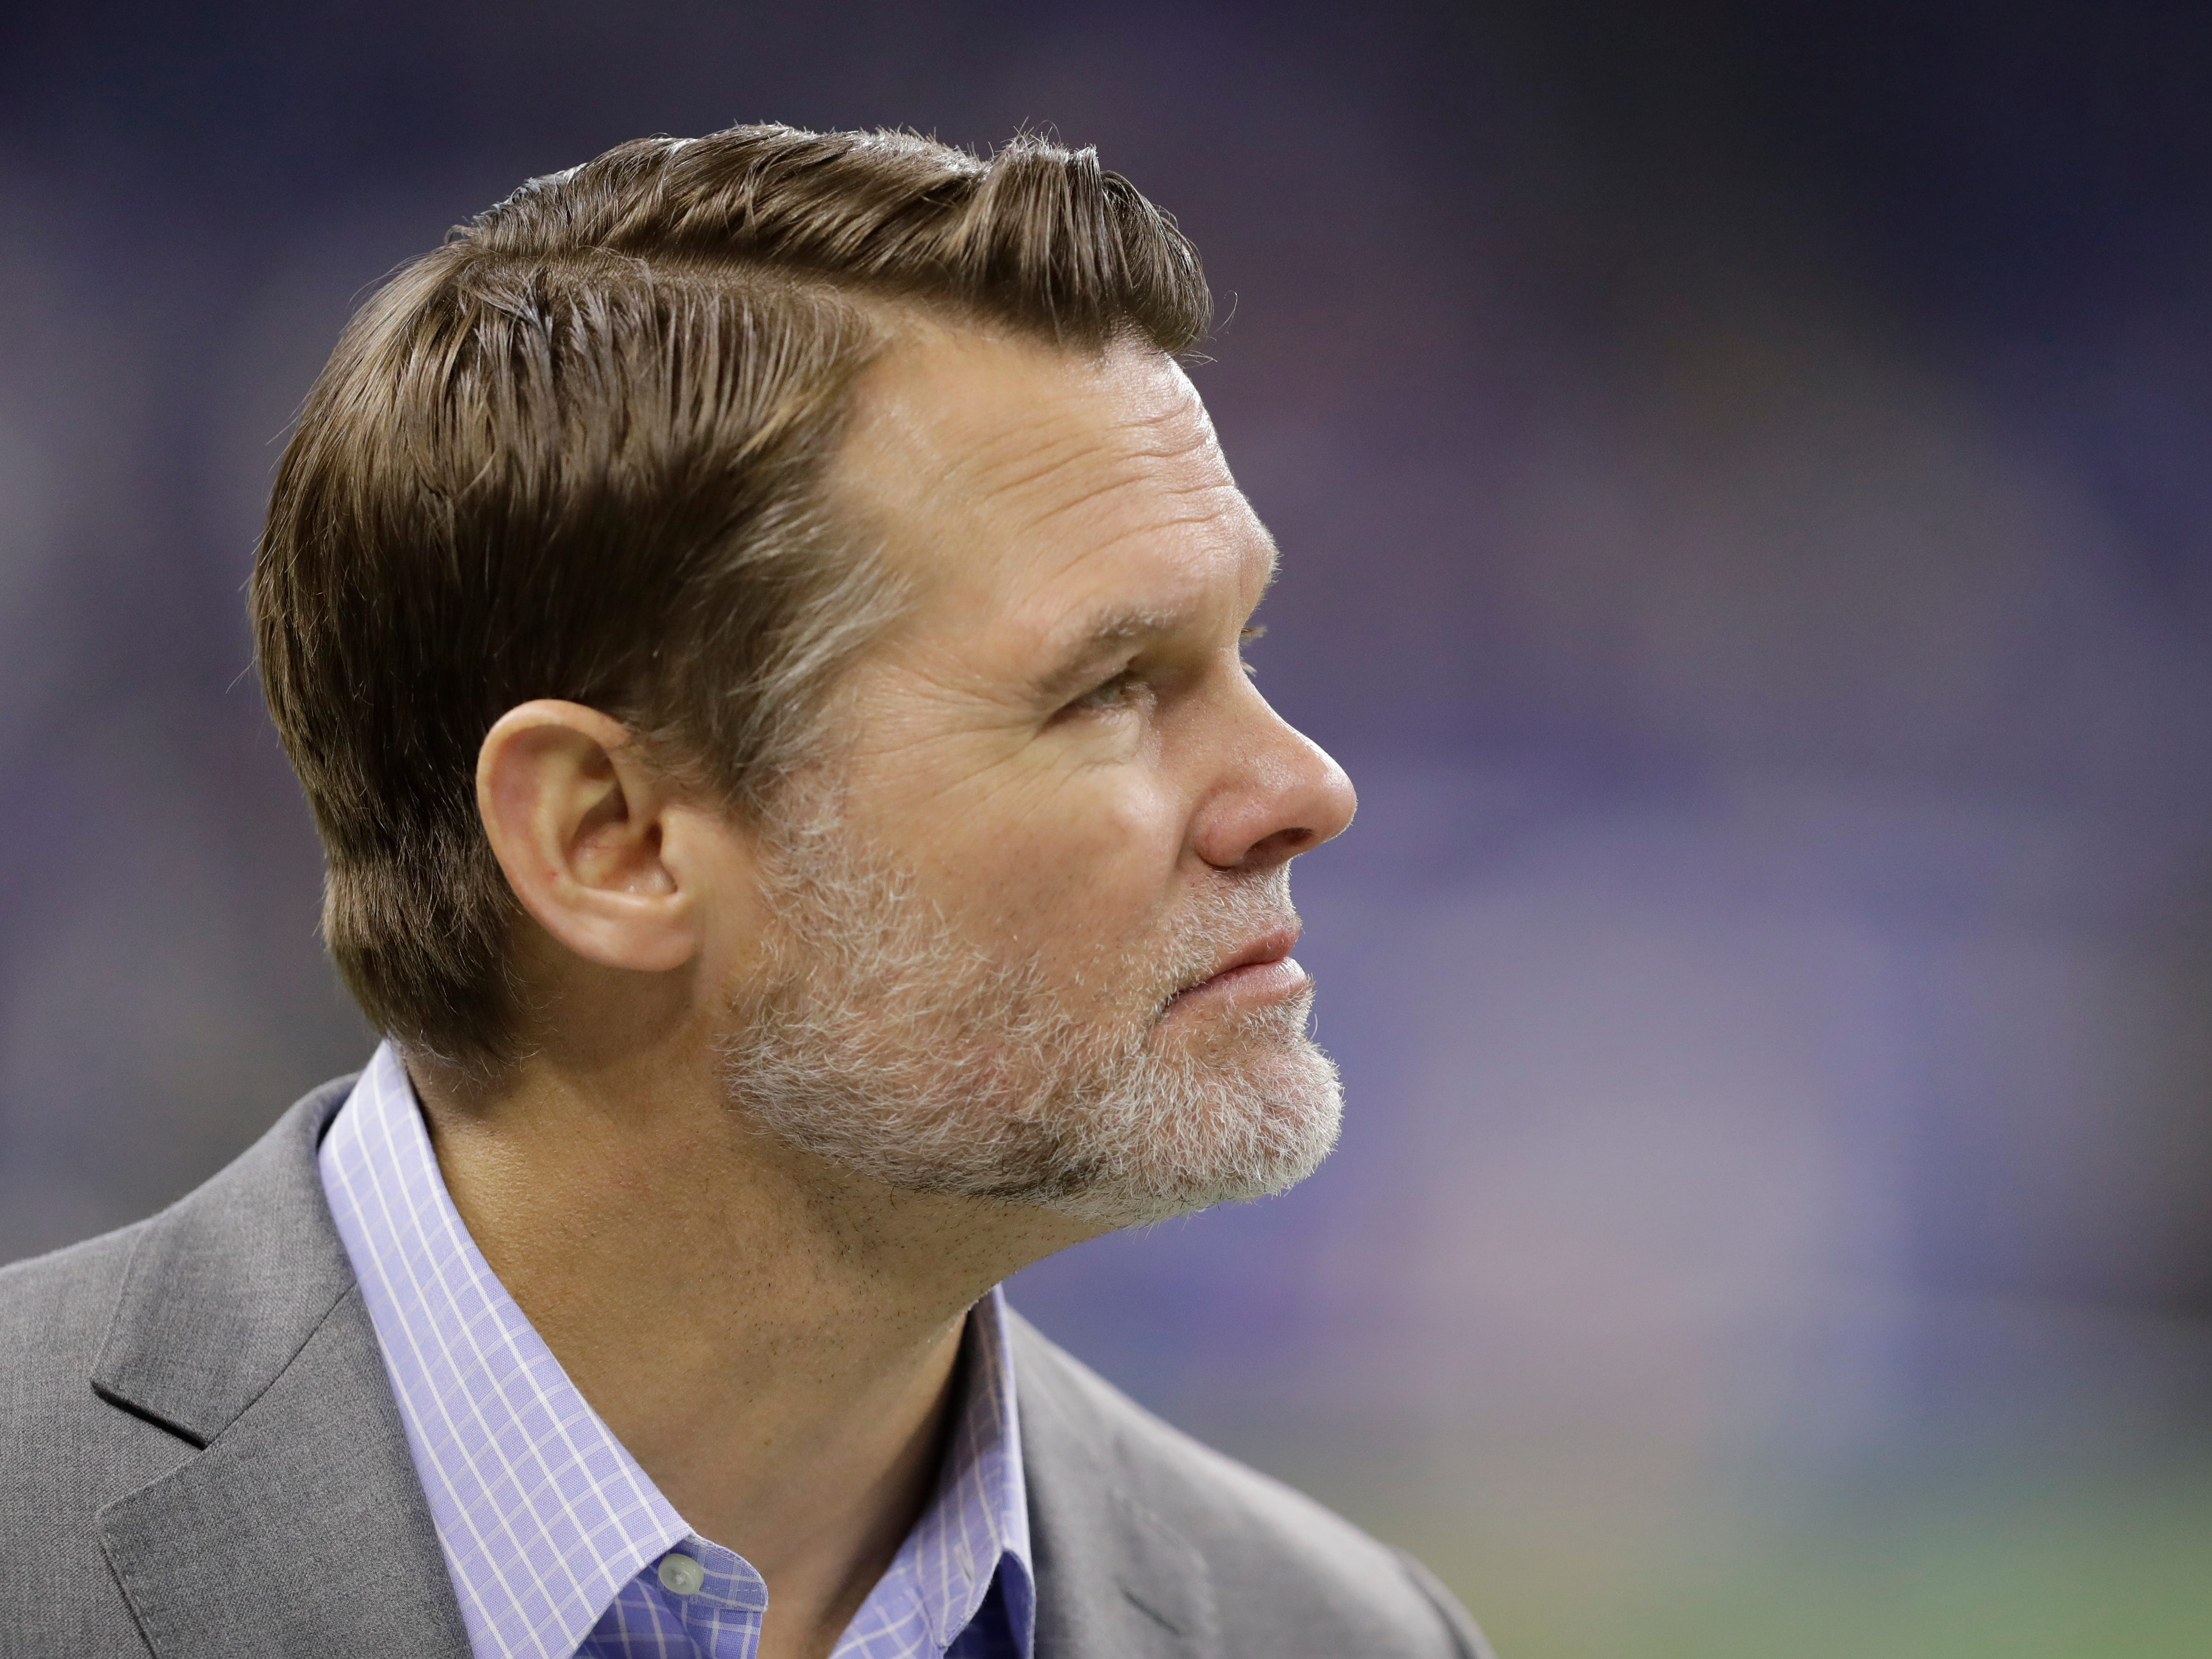 NFL free agency is still going; the Colts may get back into it